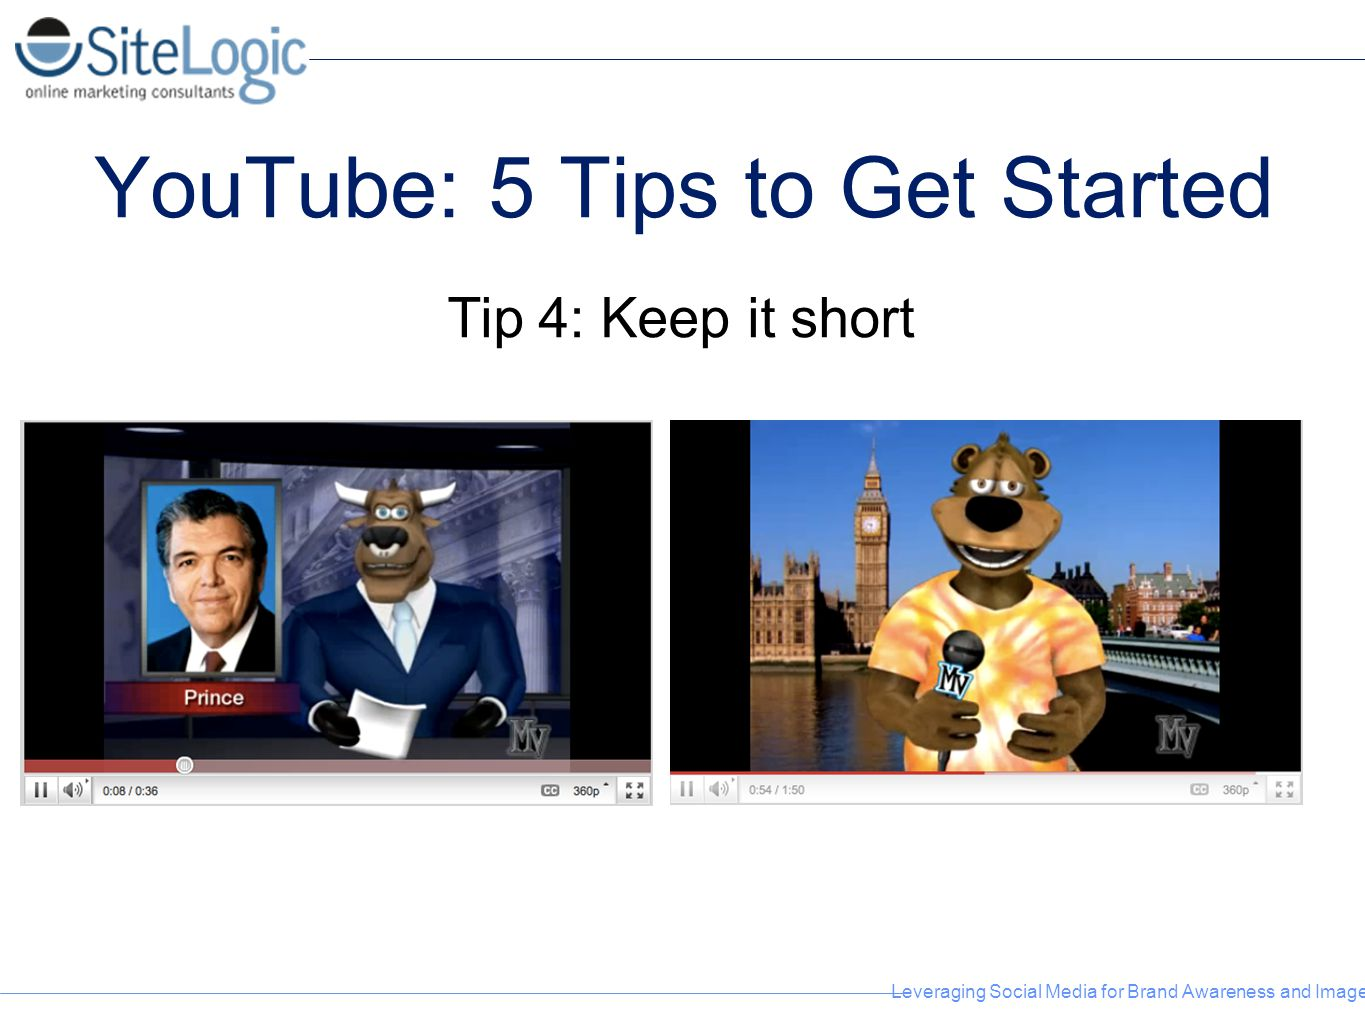 Leveraging Social Media for Brand Awareness and Image YouTube: 5 Tips to Get Started Tip 4: Keep it short